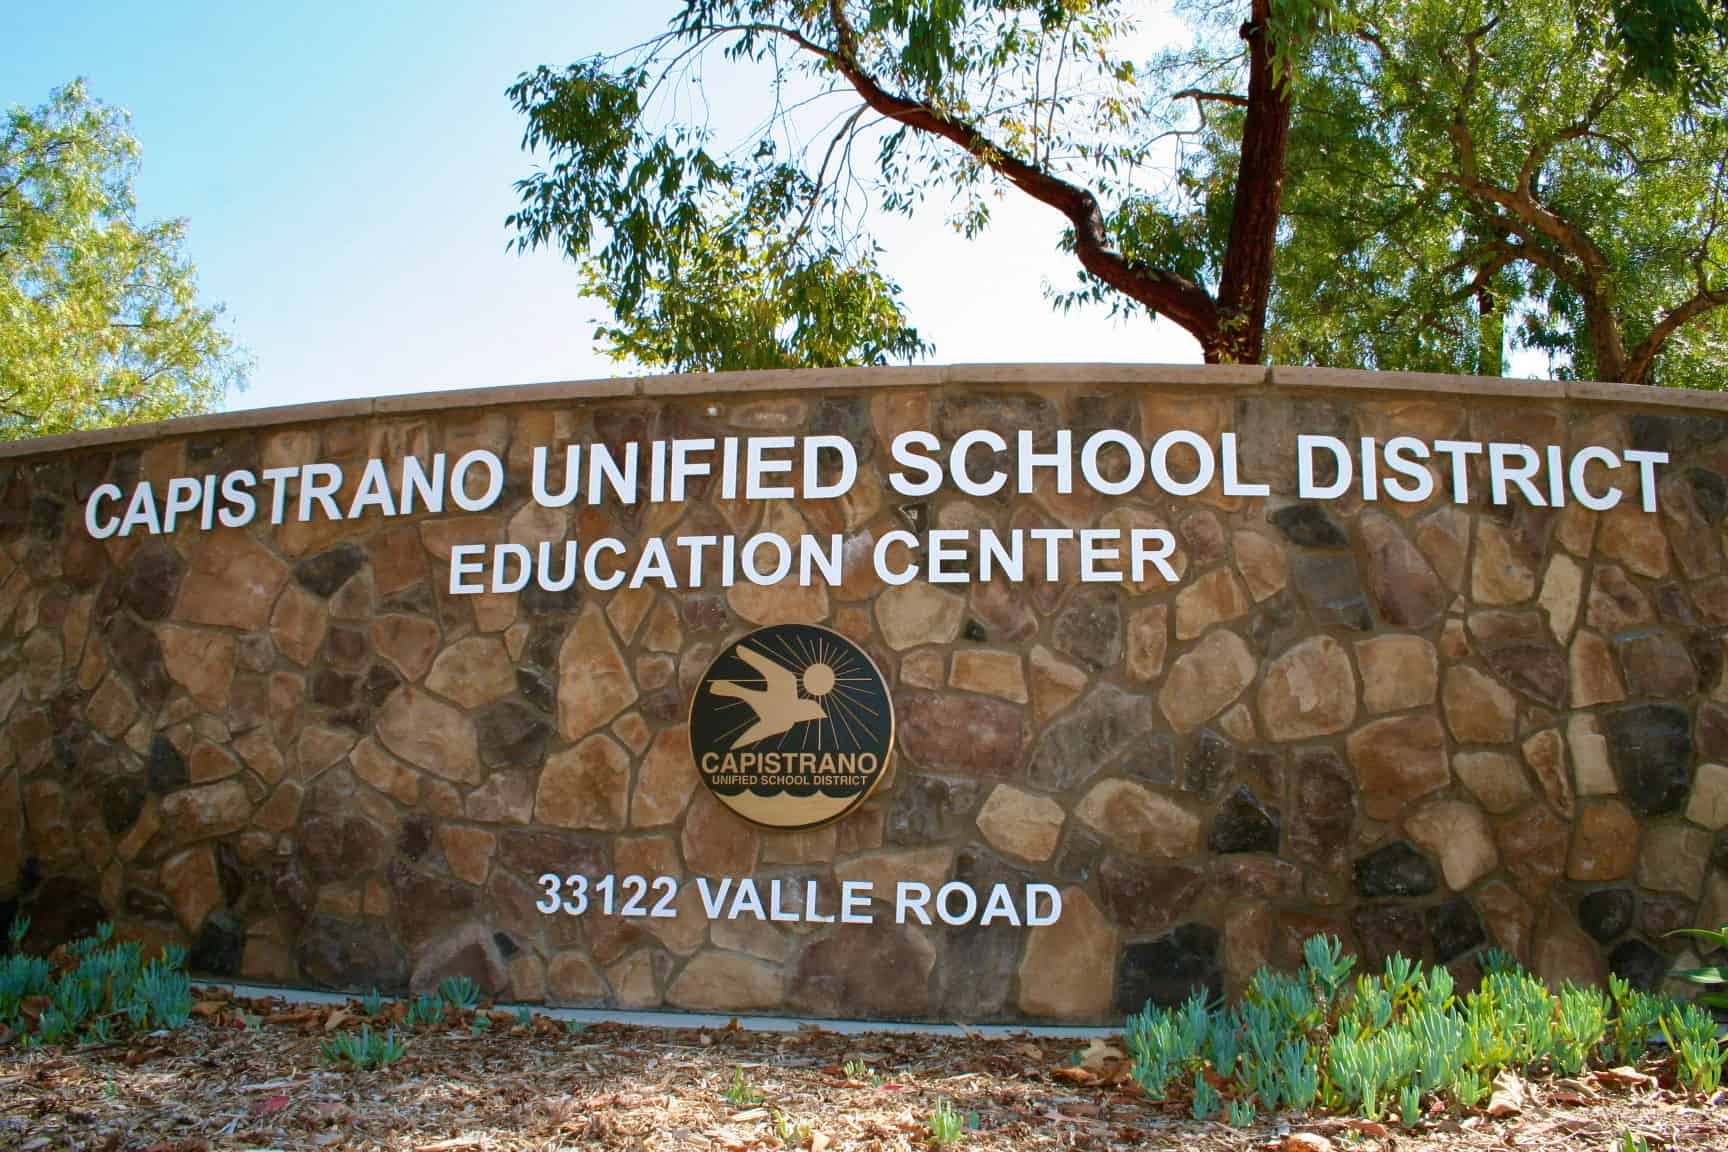 Capistrano Unified School District building sign